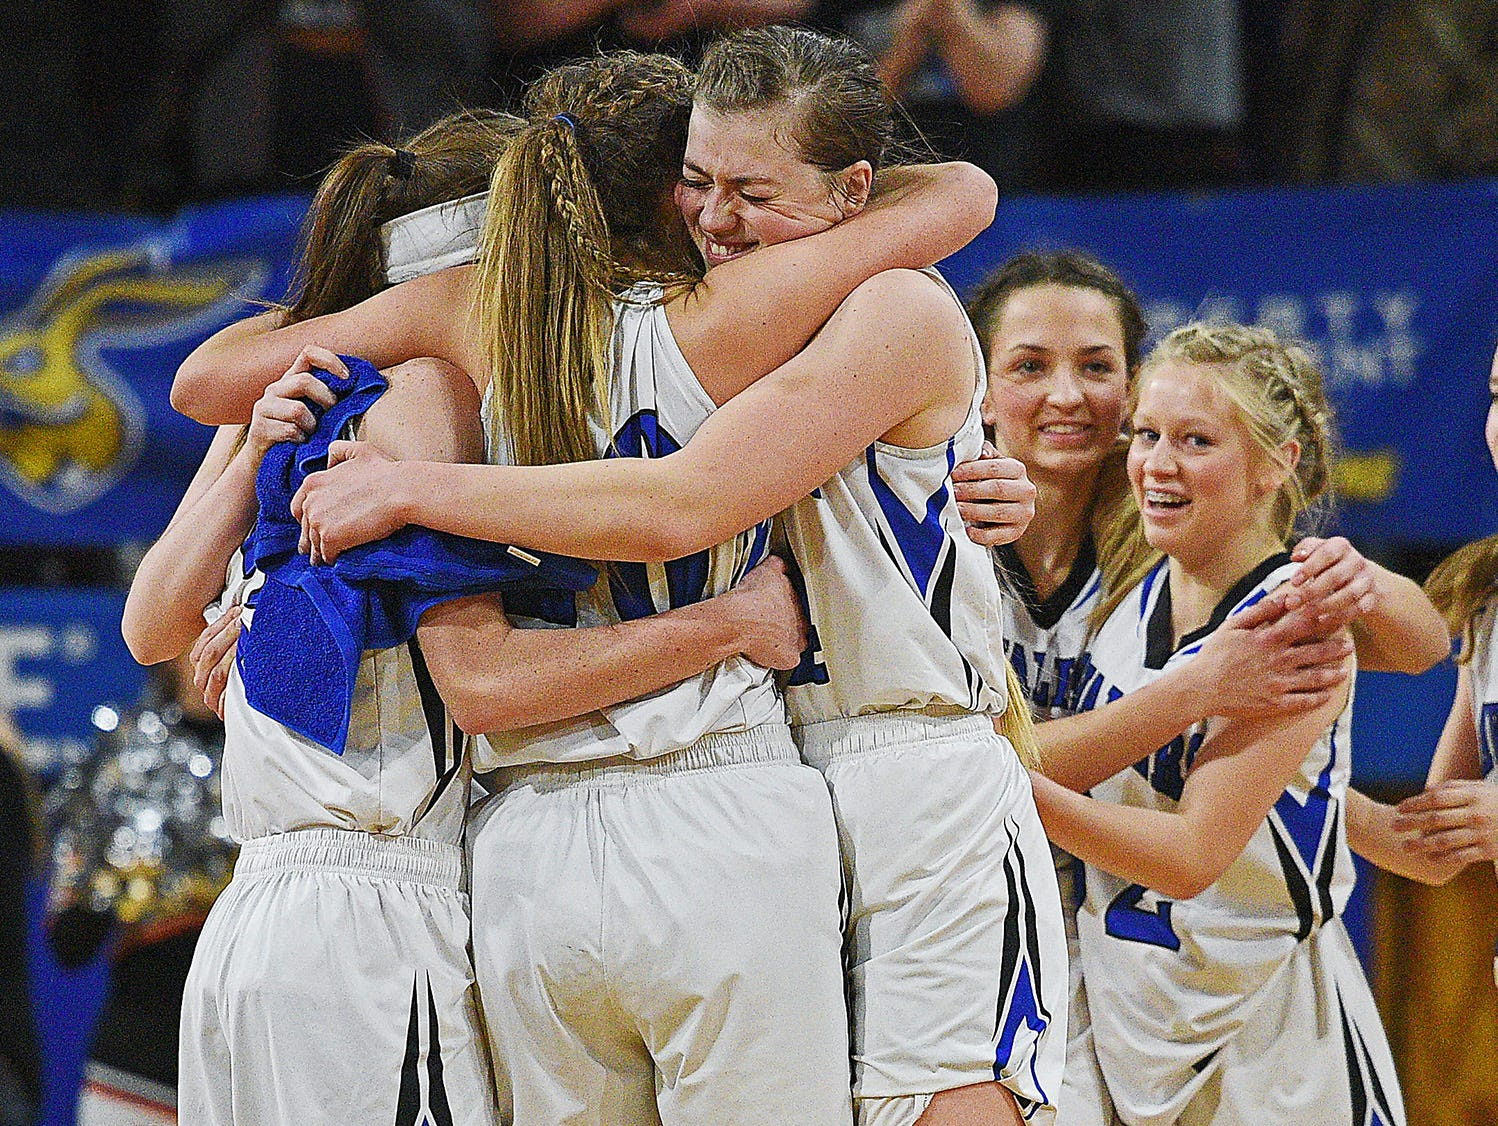 St. Thomas More's Jayden Bies (3), Klaire Kirsch (20) and Aislinn Duffy (44) hug while celebrating their 47-36 win over Lennox in the 2017 SDHSAA Class A State Girls Basketball Tournament championship game for their fourth consecutive title Saturday, March 11, 2017, at Frost Arena on the South Dakota State University campus in Brookings, S.D.